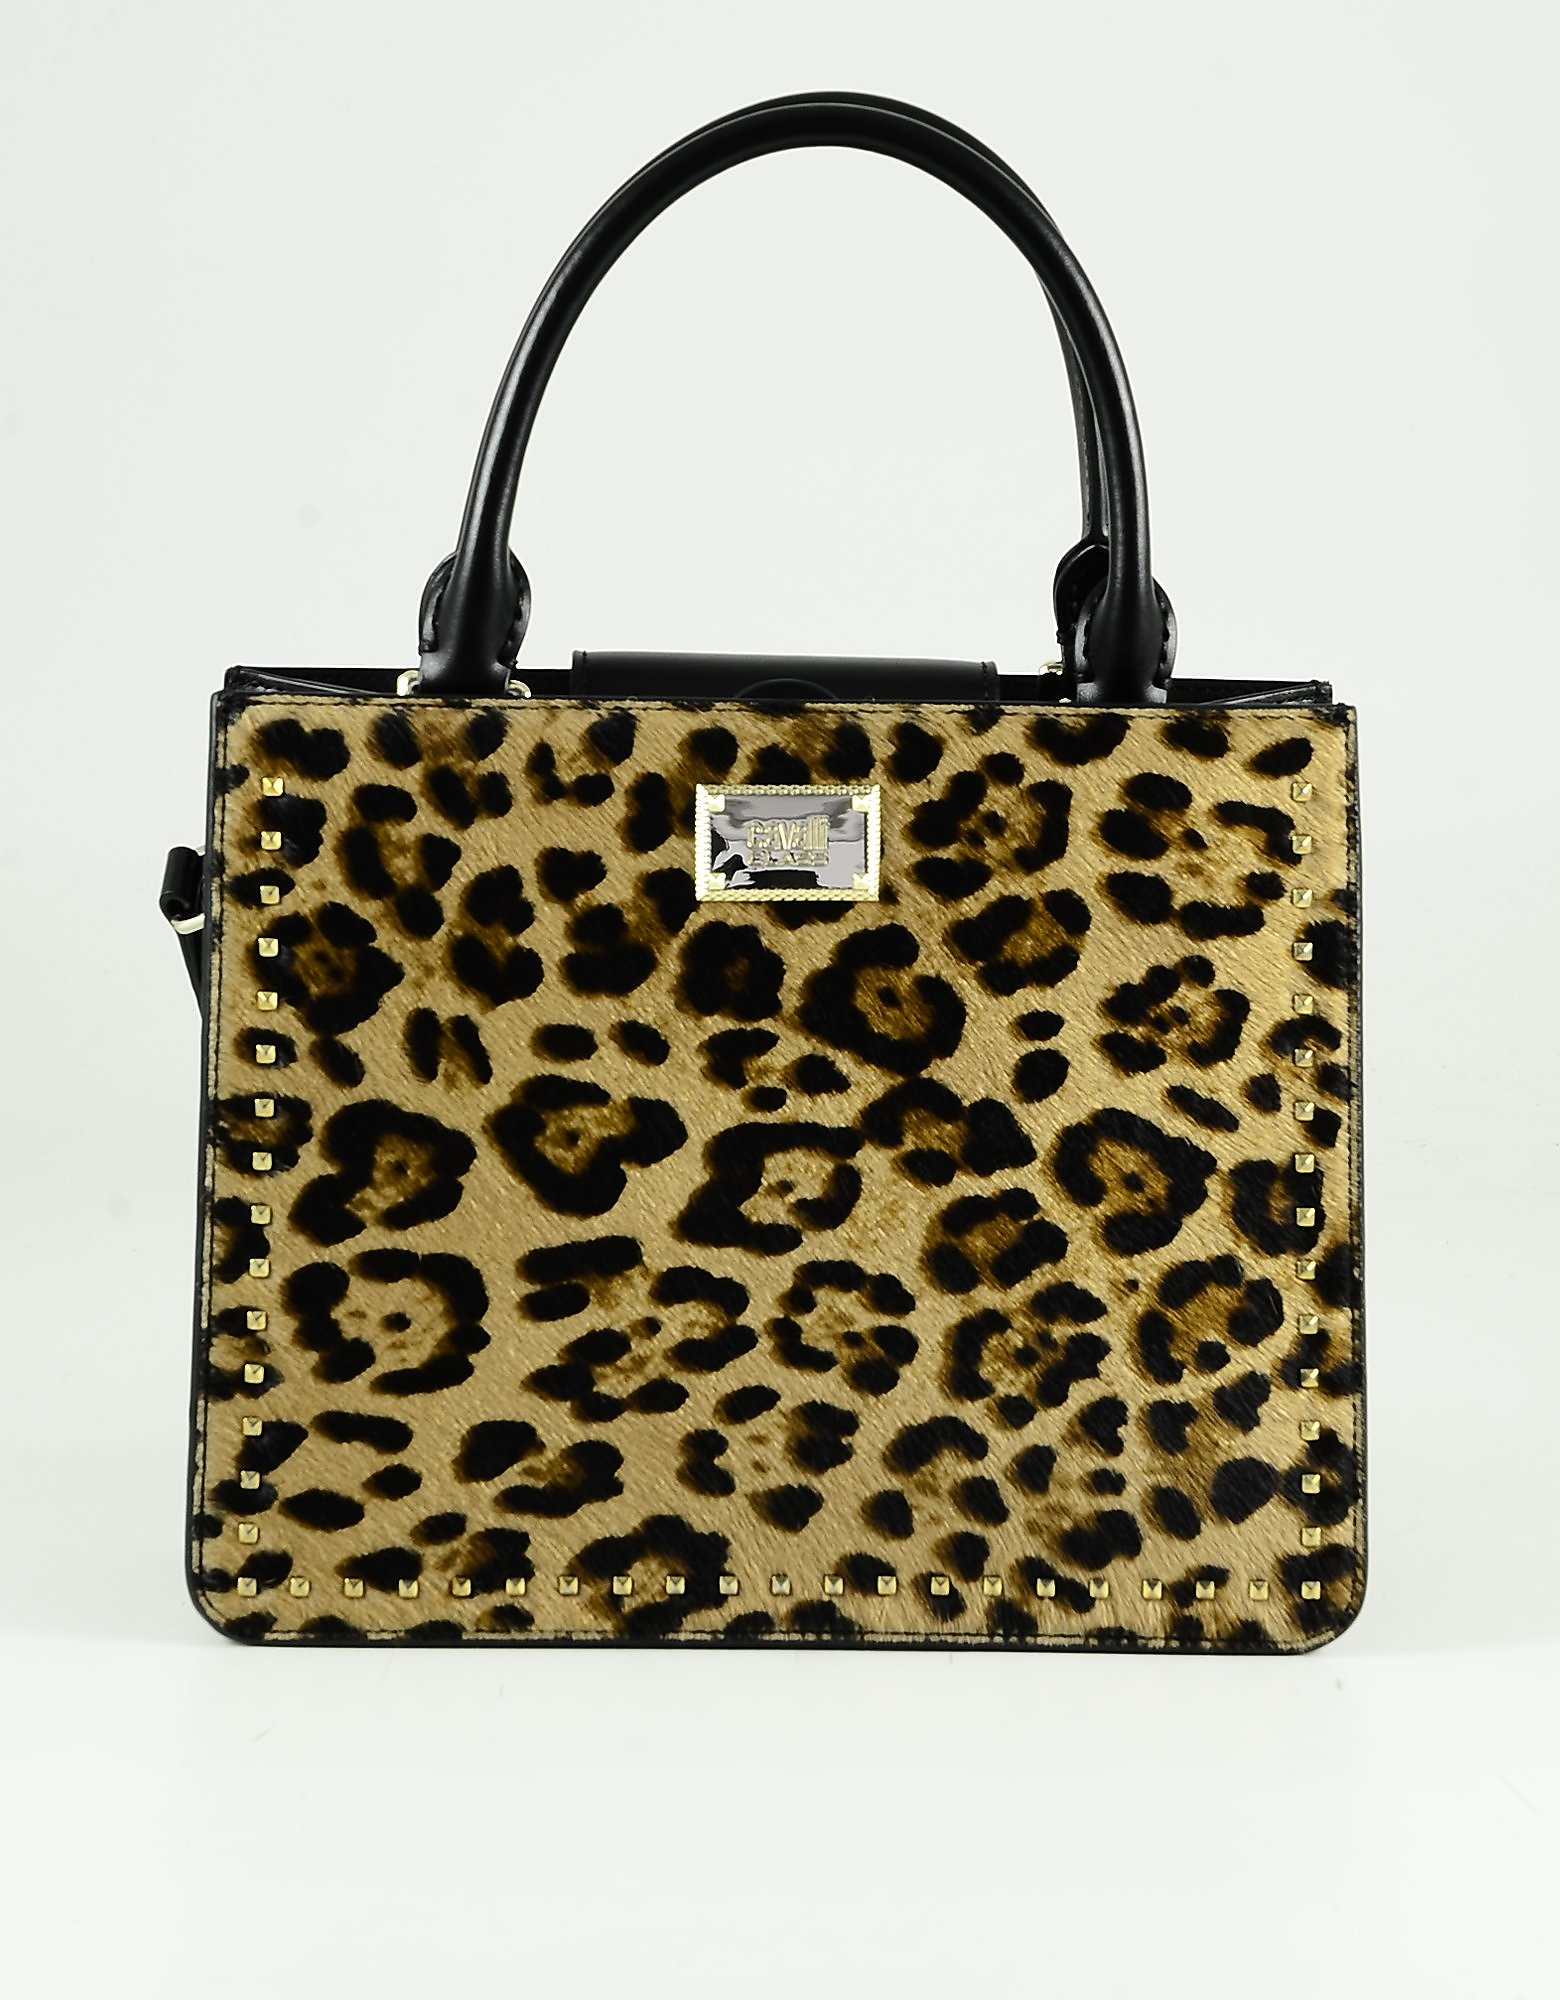 Class Roberto Cavalli Animal Print Haircalf And Black Leather Tote Bag In Brown